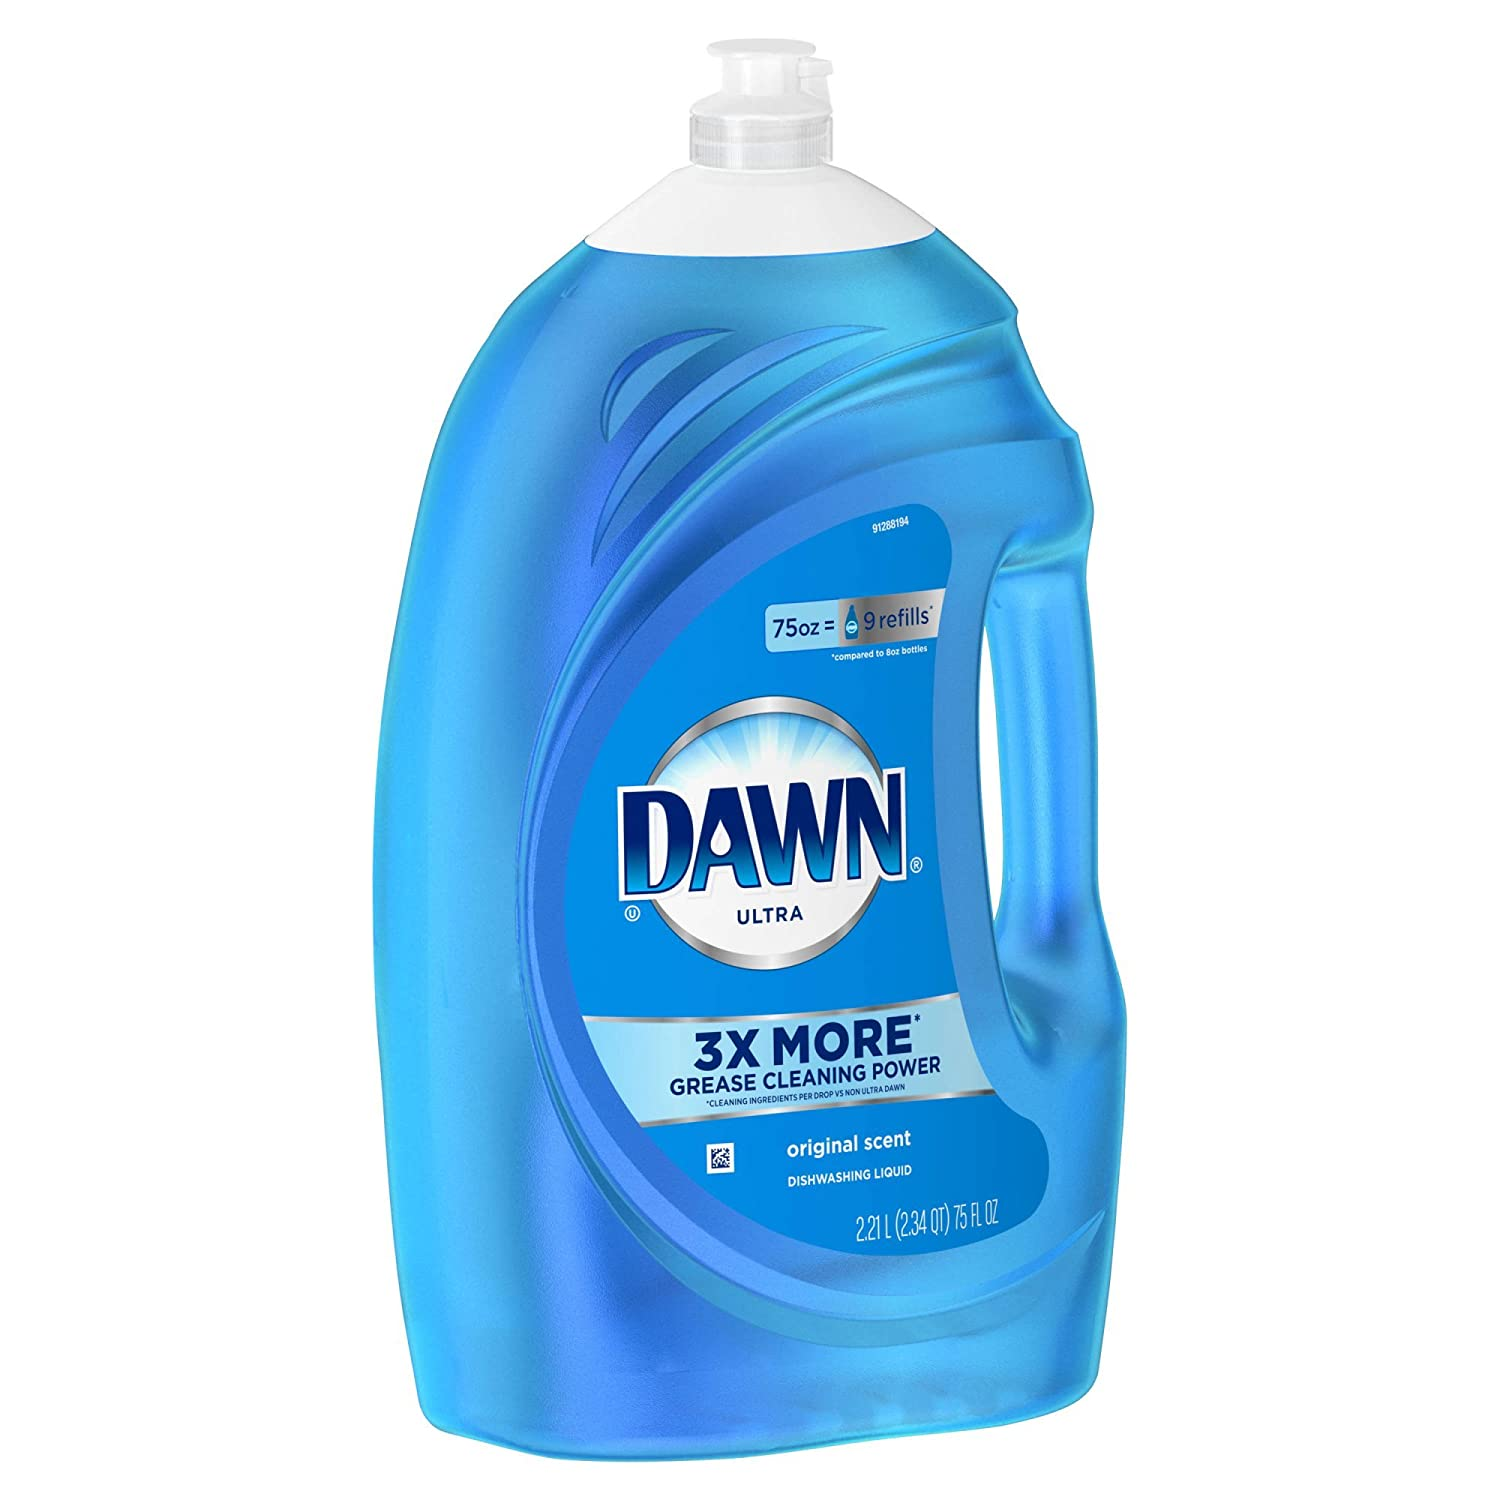 Dawn Dish Soap、Ultra Dishwashing Liquid Original Scent ( Packaging May Vary ) 75 Ounce, 6 Count ブルー B0785HZW24 ブルー 75 Ounce, 6 Count